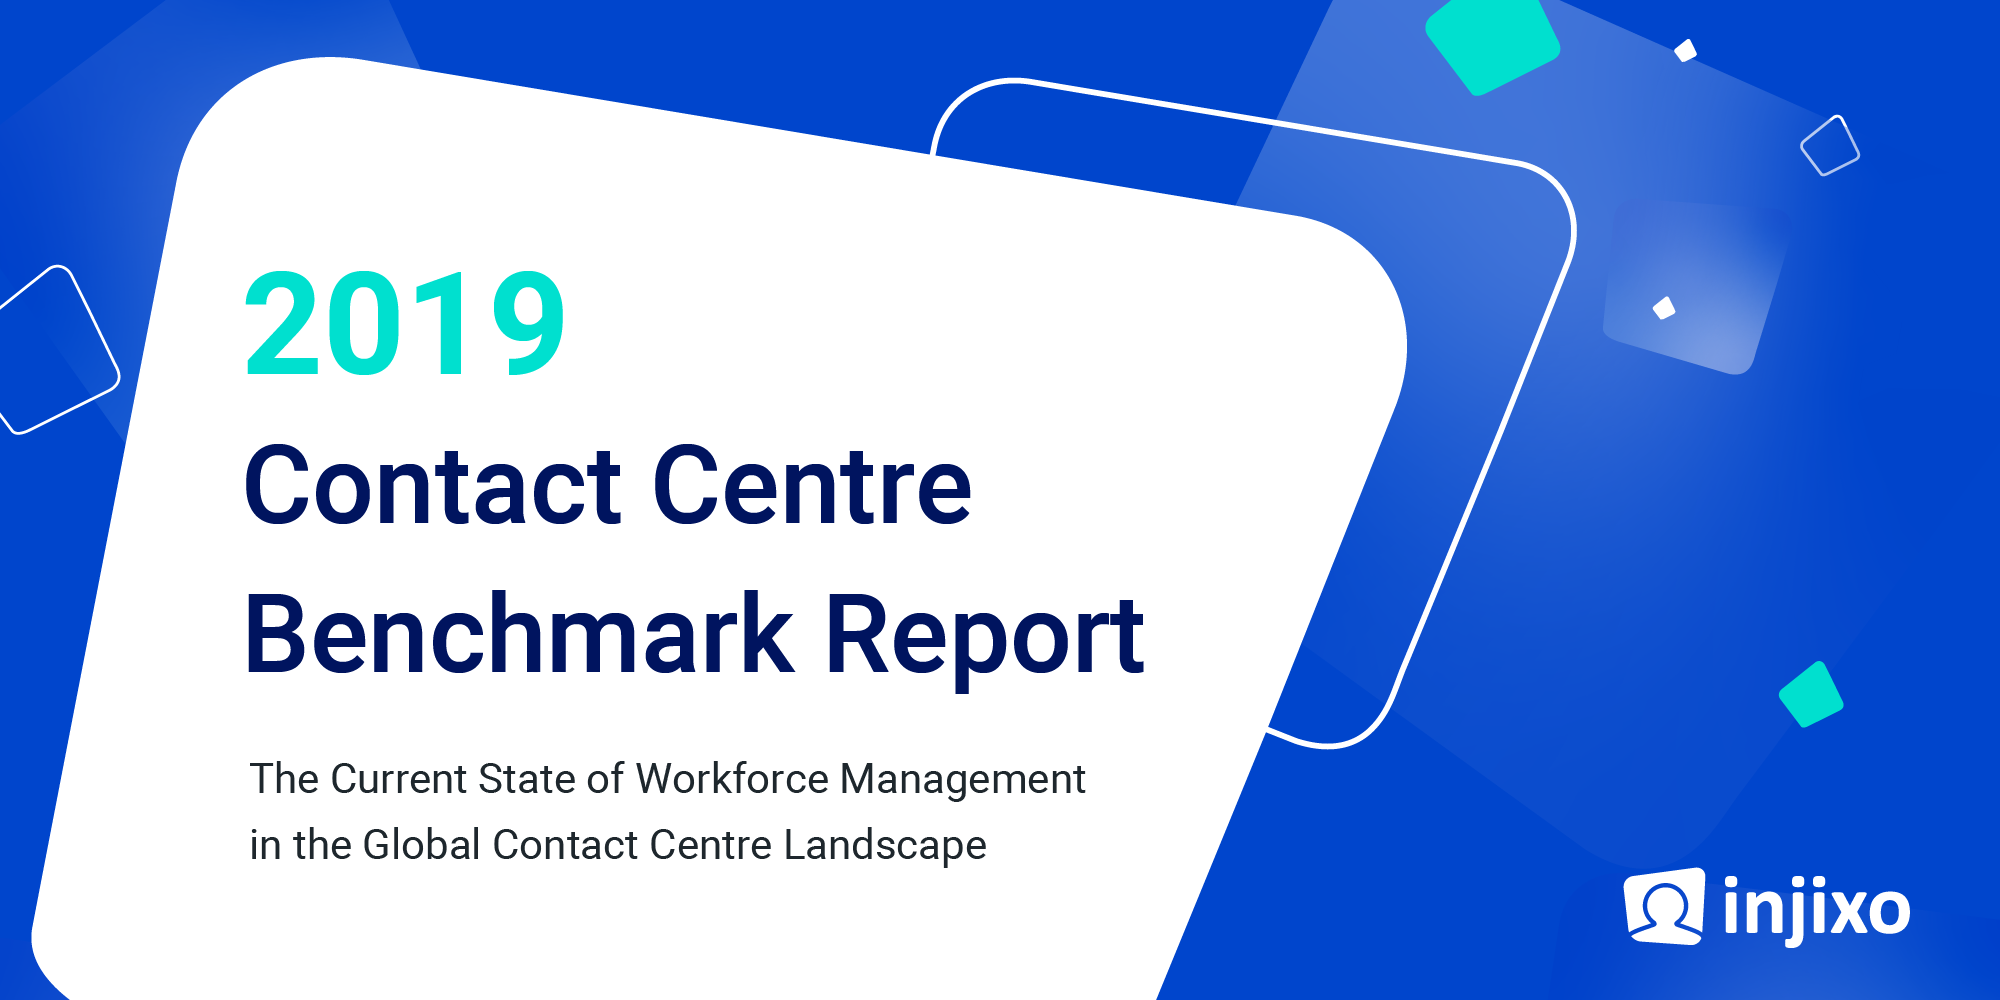 Contact Center Benchmark Report 2019